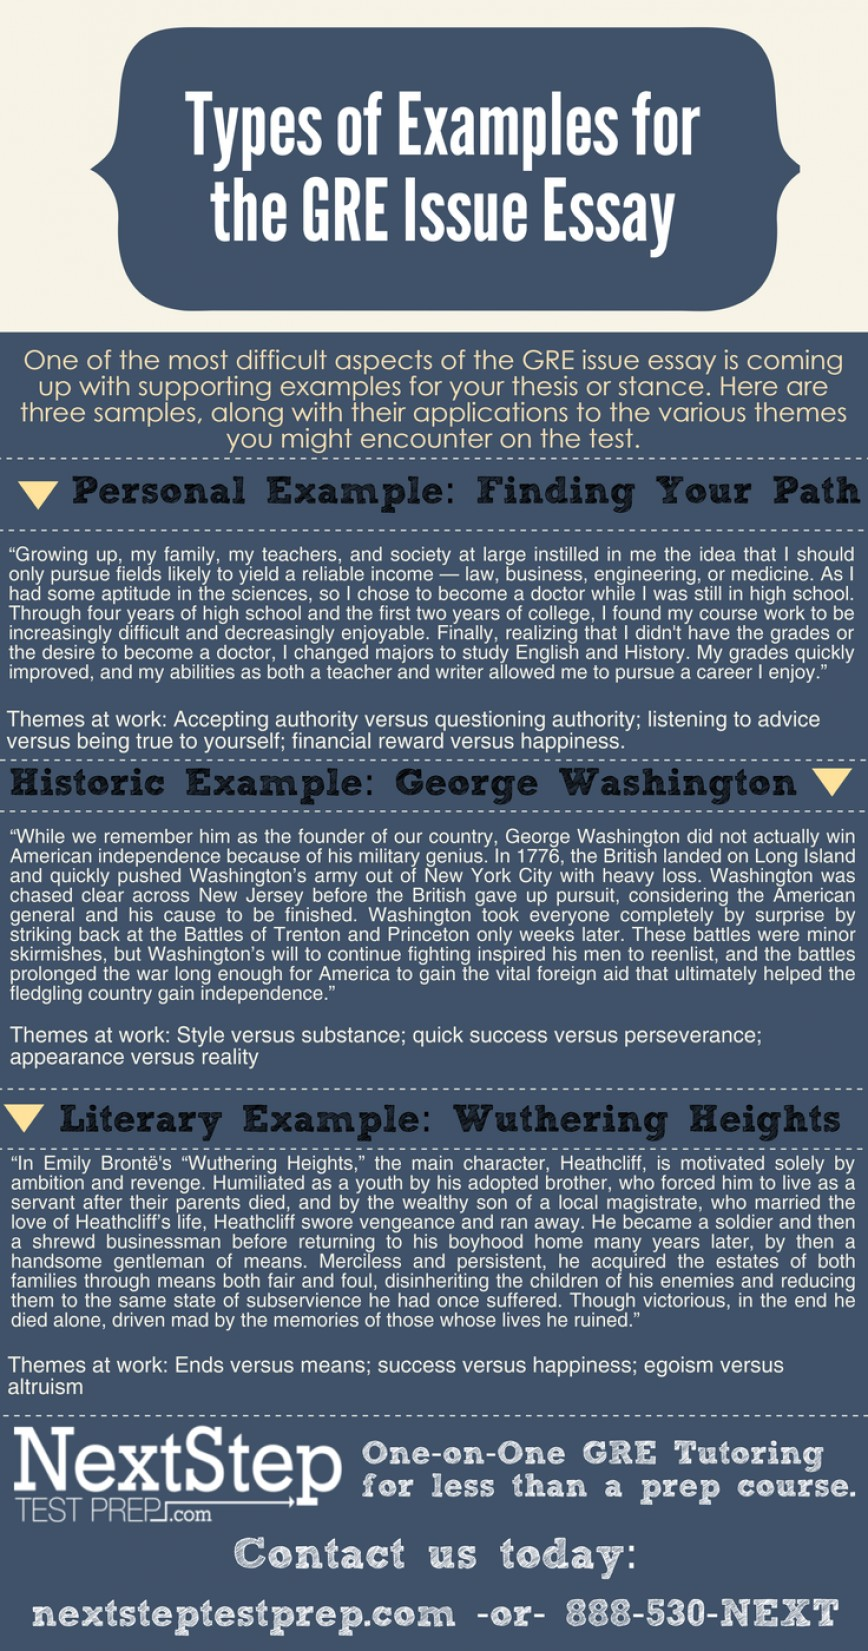 006 Gre Essays Ig Draft 28129 Scaled Issue Stirring Essay Examples 6 Analytical Writing Pdf